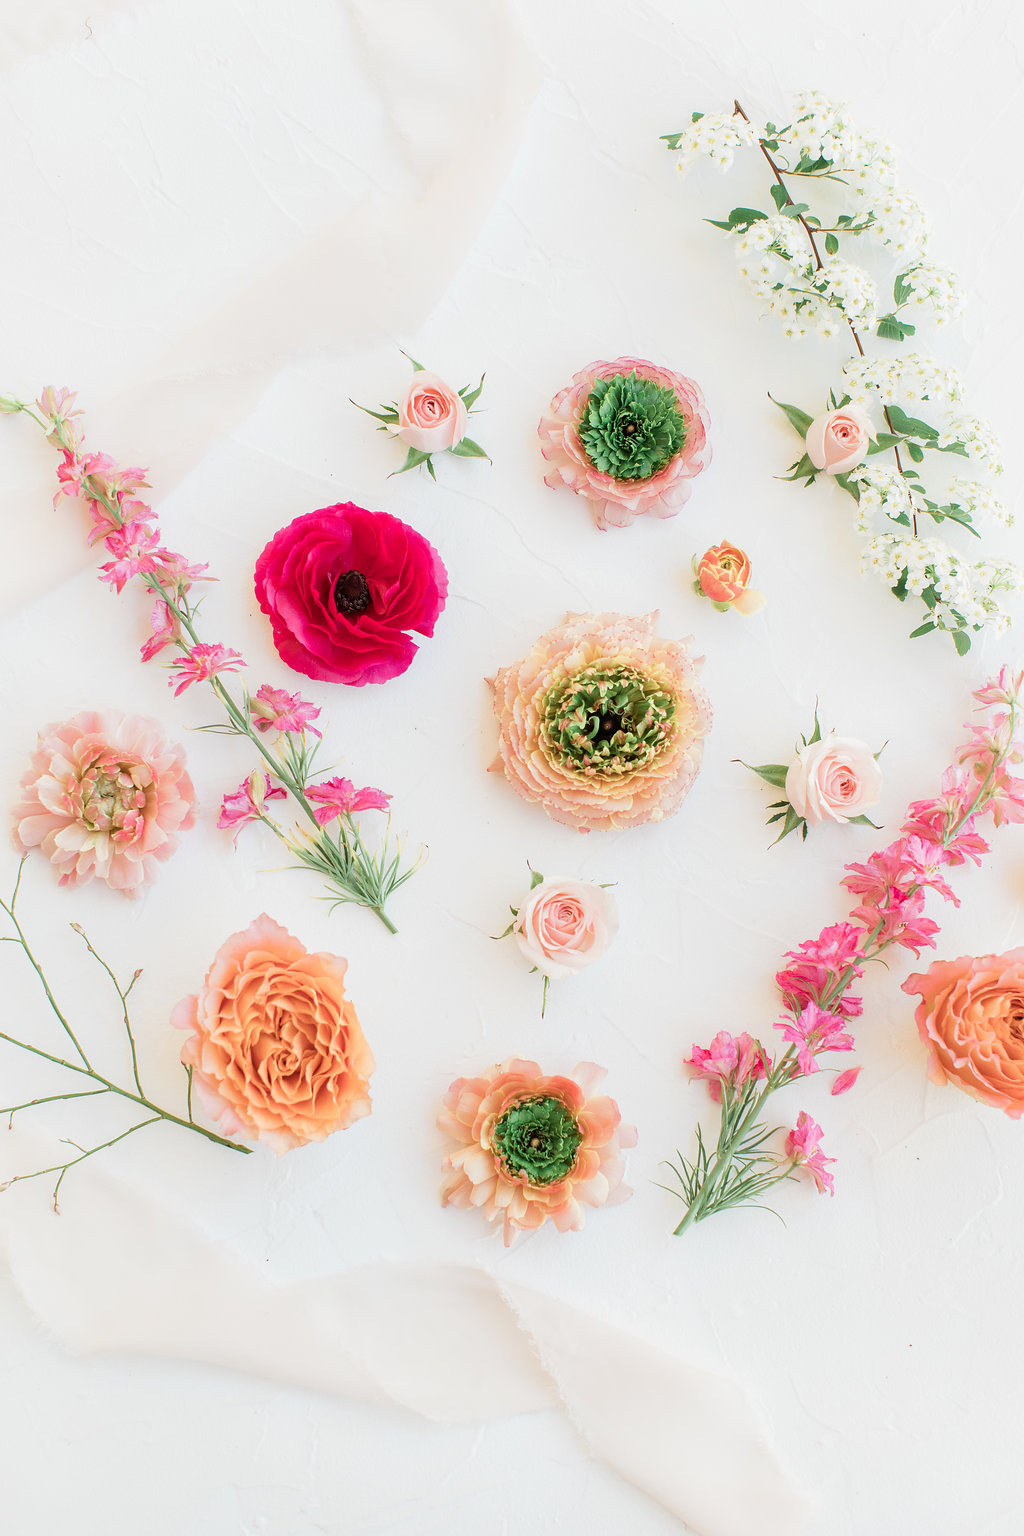 Dreamy and pretty floral flatlay for instagram and wallpaper